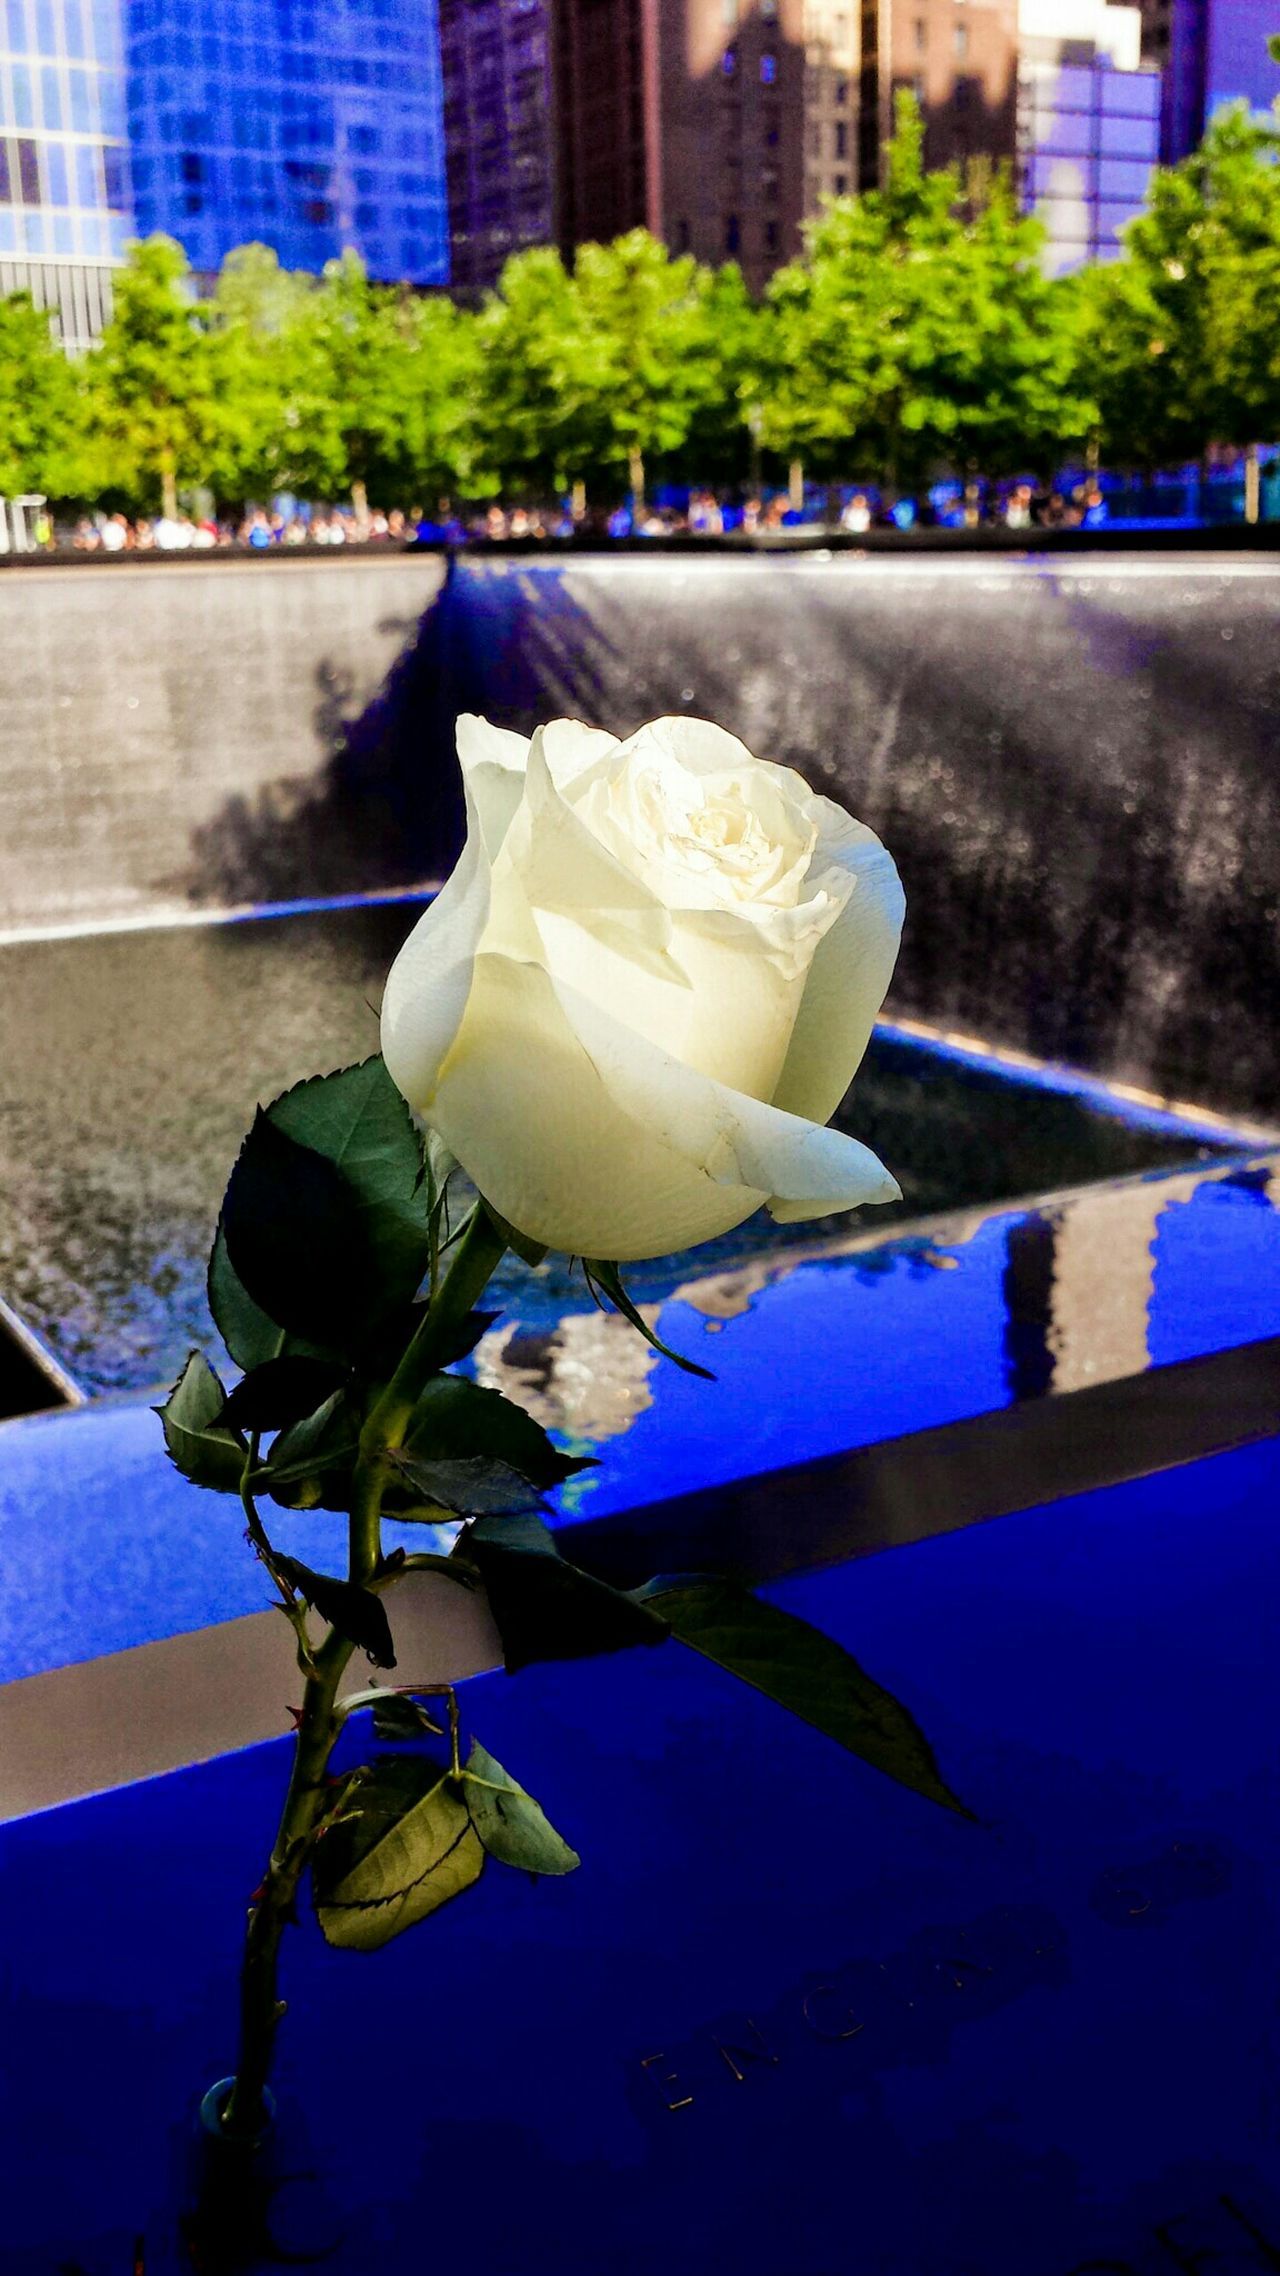 The 9/11 Memorial and Fountain In Memory Of 9/11 Victims... A White Rose was left by someone visiting. It caught my eye as the sunlight provided it with it's own special spot light.